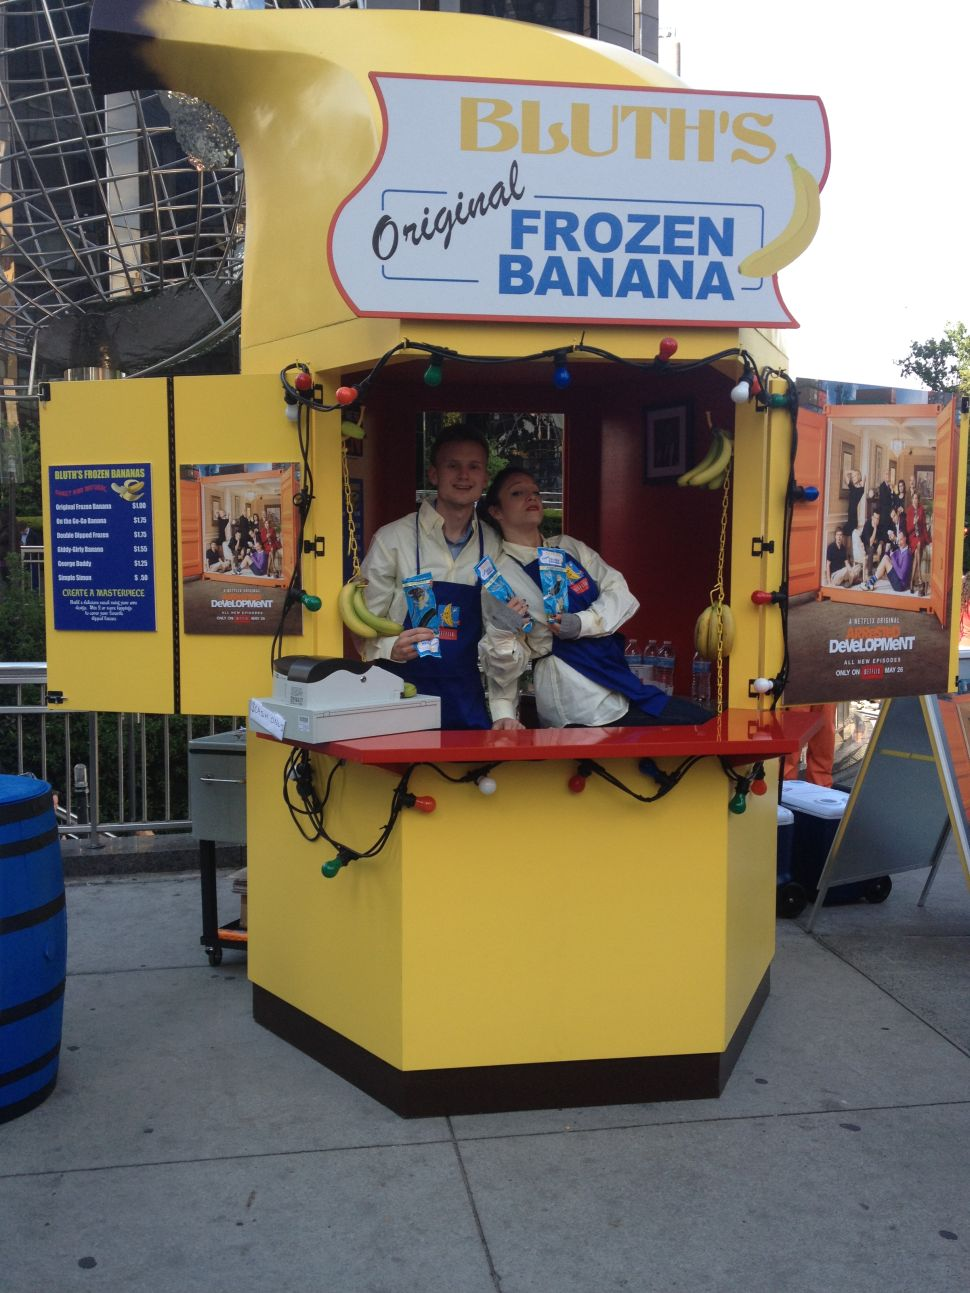 Bluth for a Day! How <em>The Observer</em> Talked Our Way into the Banana Stand